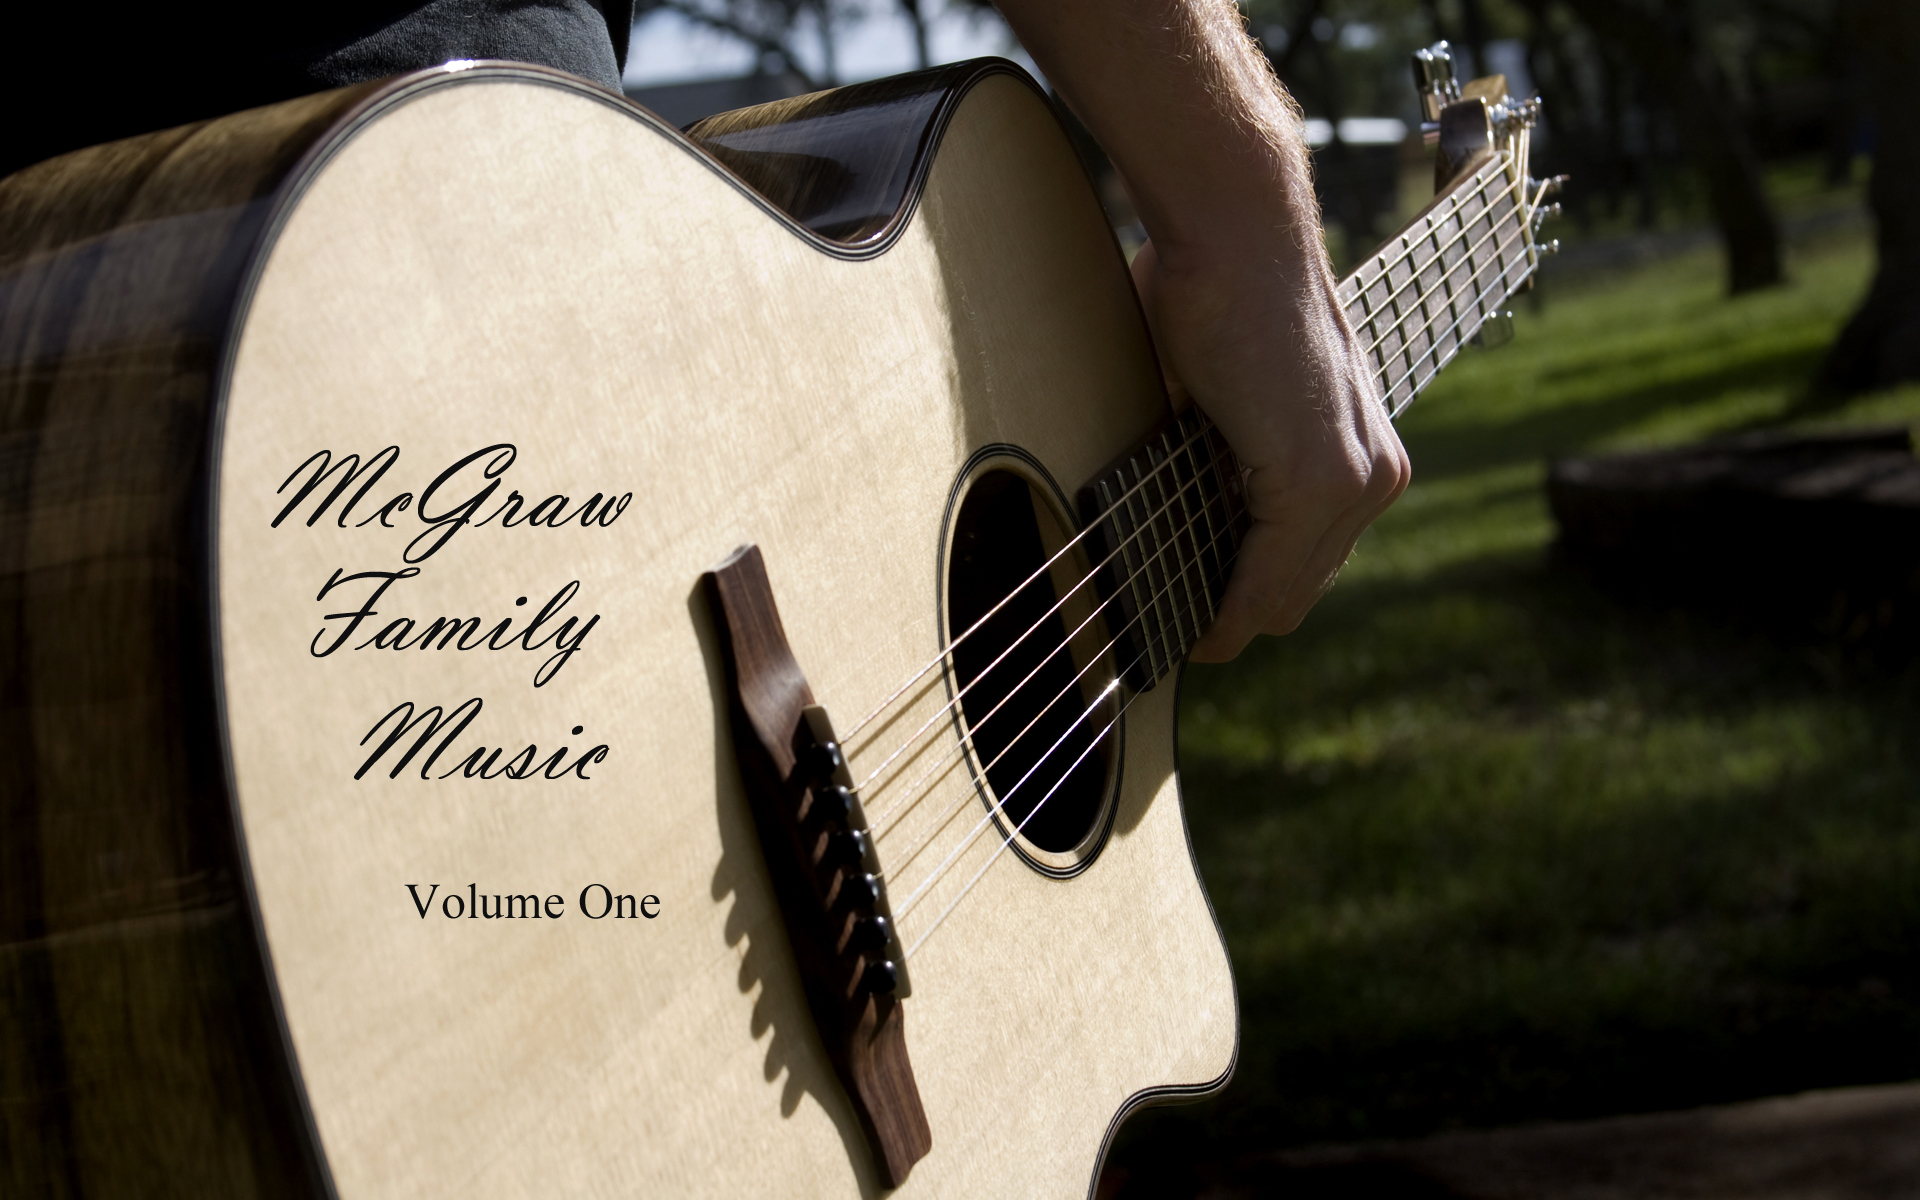 About - Find out about our music ministry, and enjoy the uplifting of Christ through song.